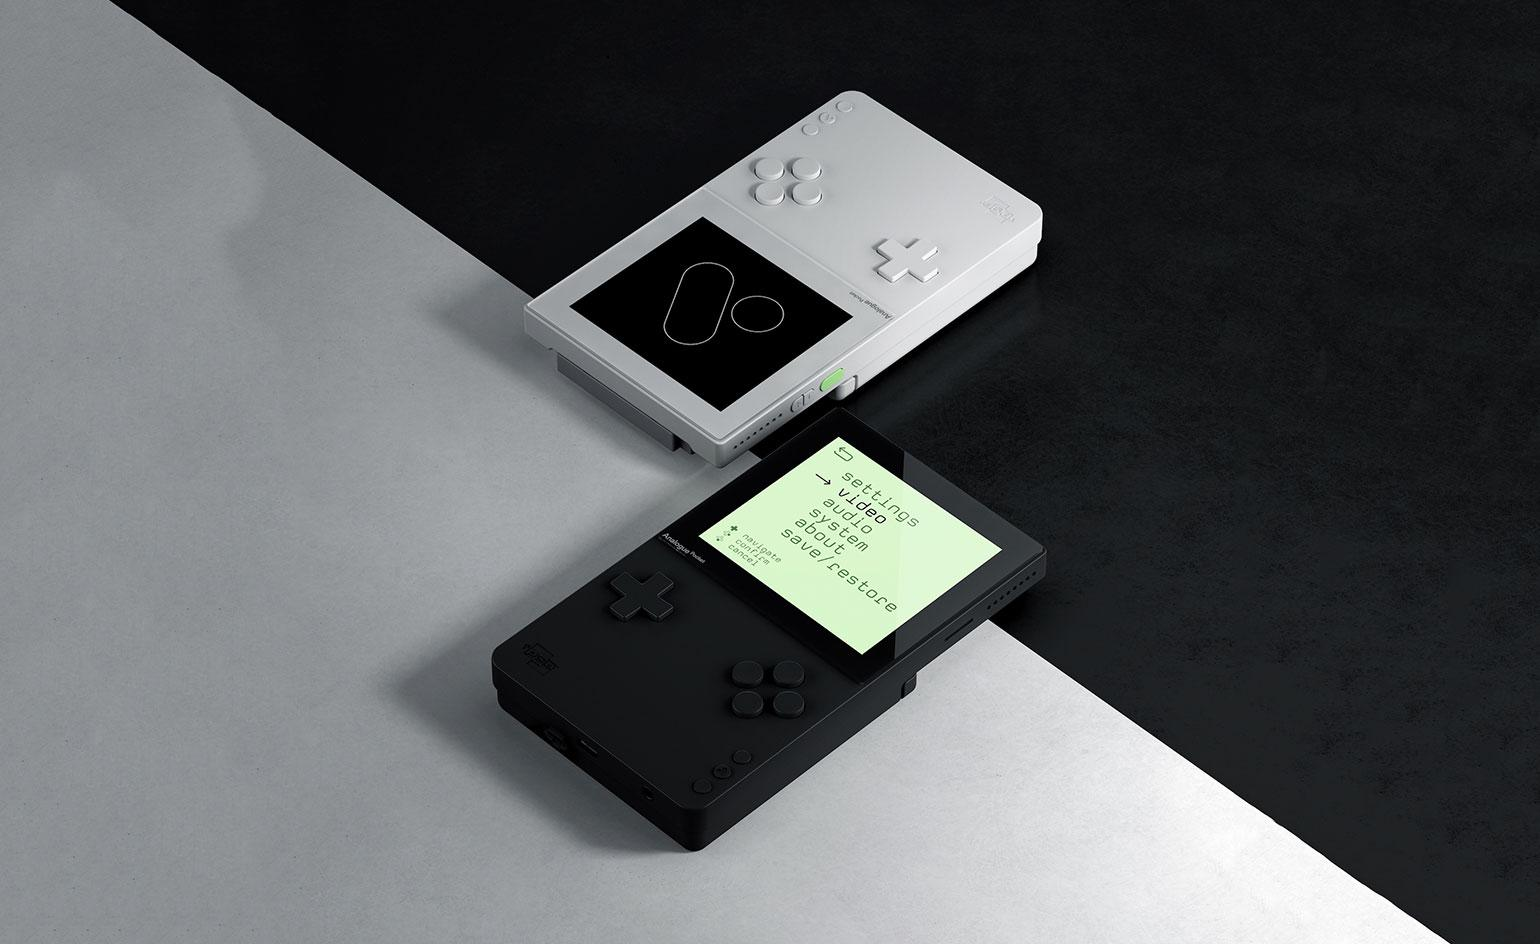 Analogue Pocket Officially Announced